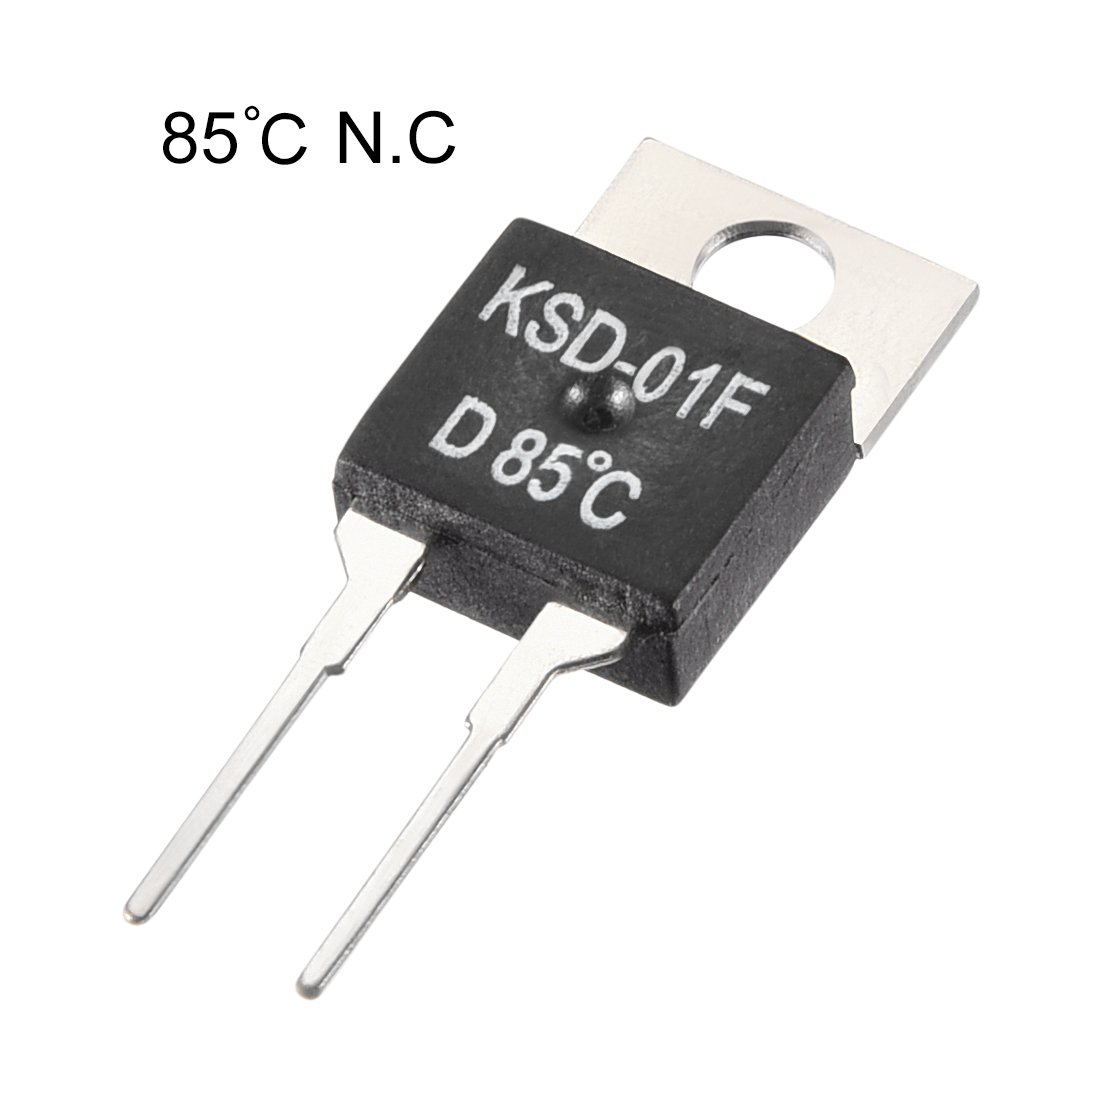 KSD-01F Thermostat, Temperature Controller 85鈩?N.C Normal Close 5pcs - image 2 of 3